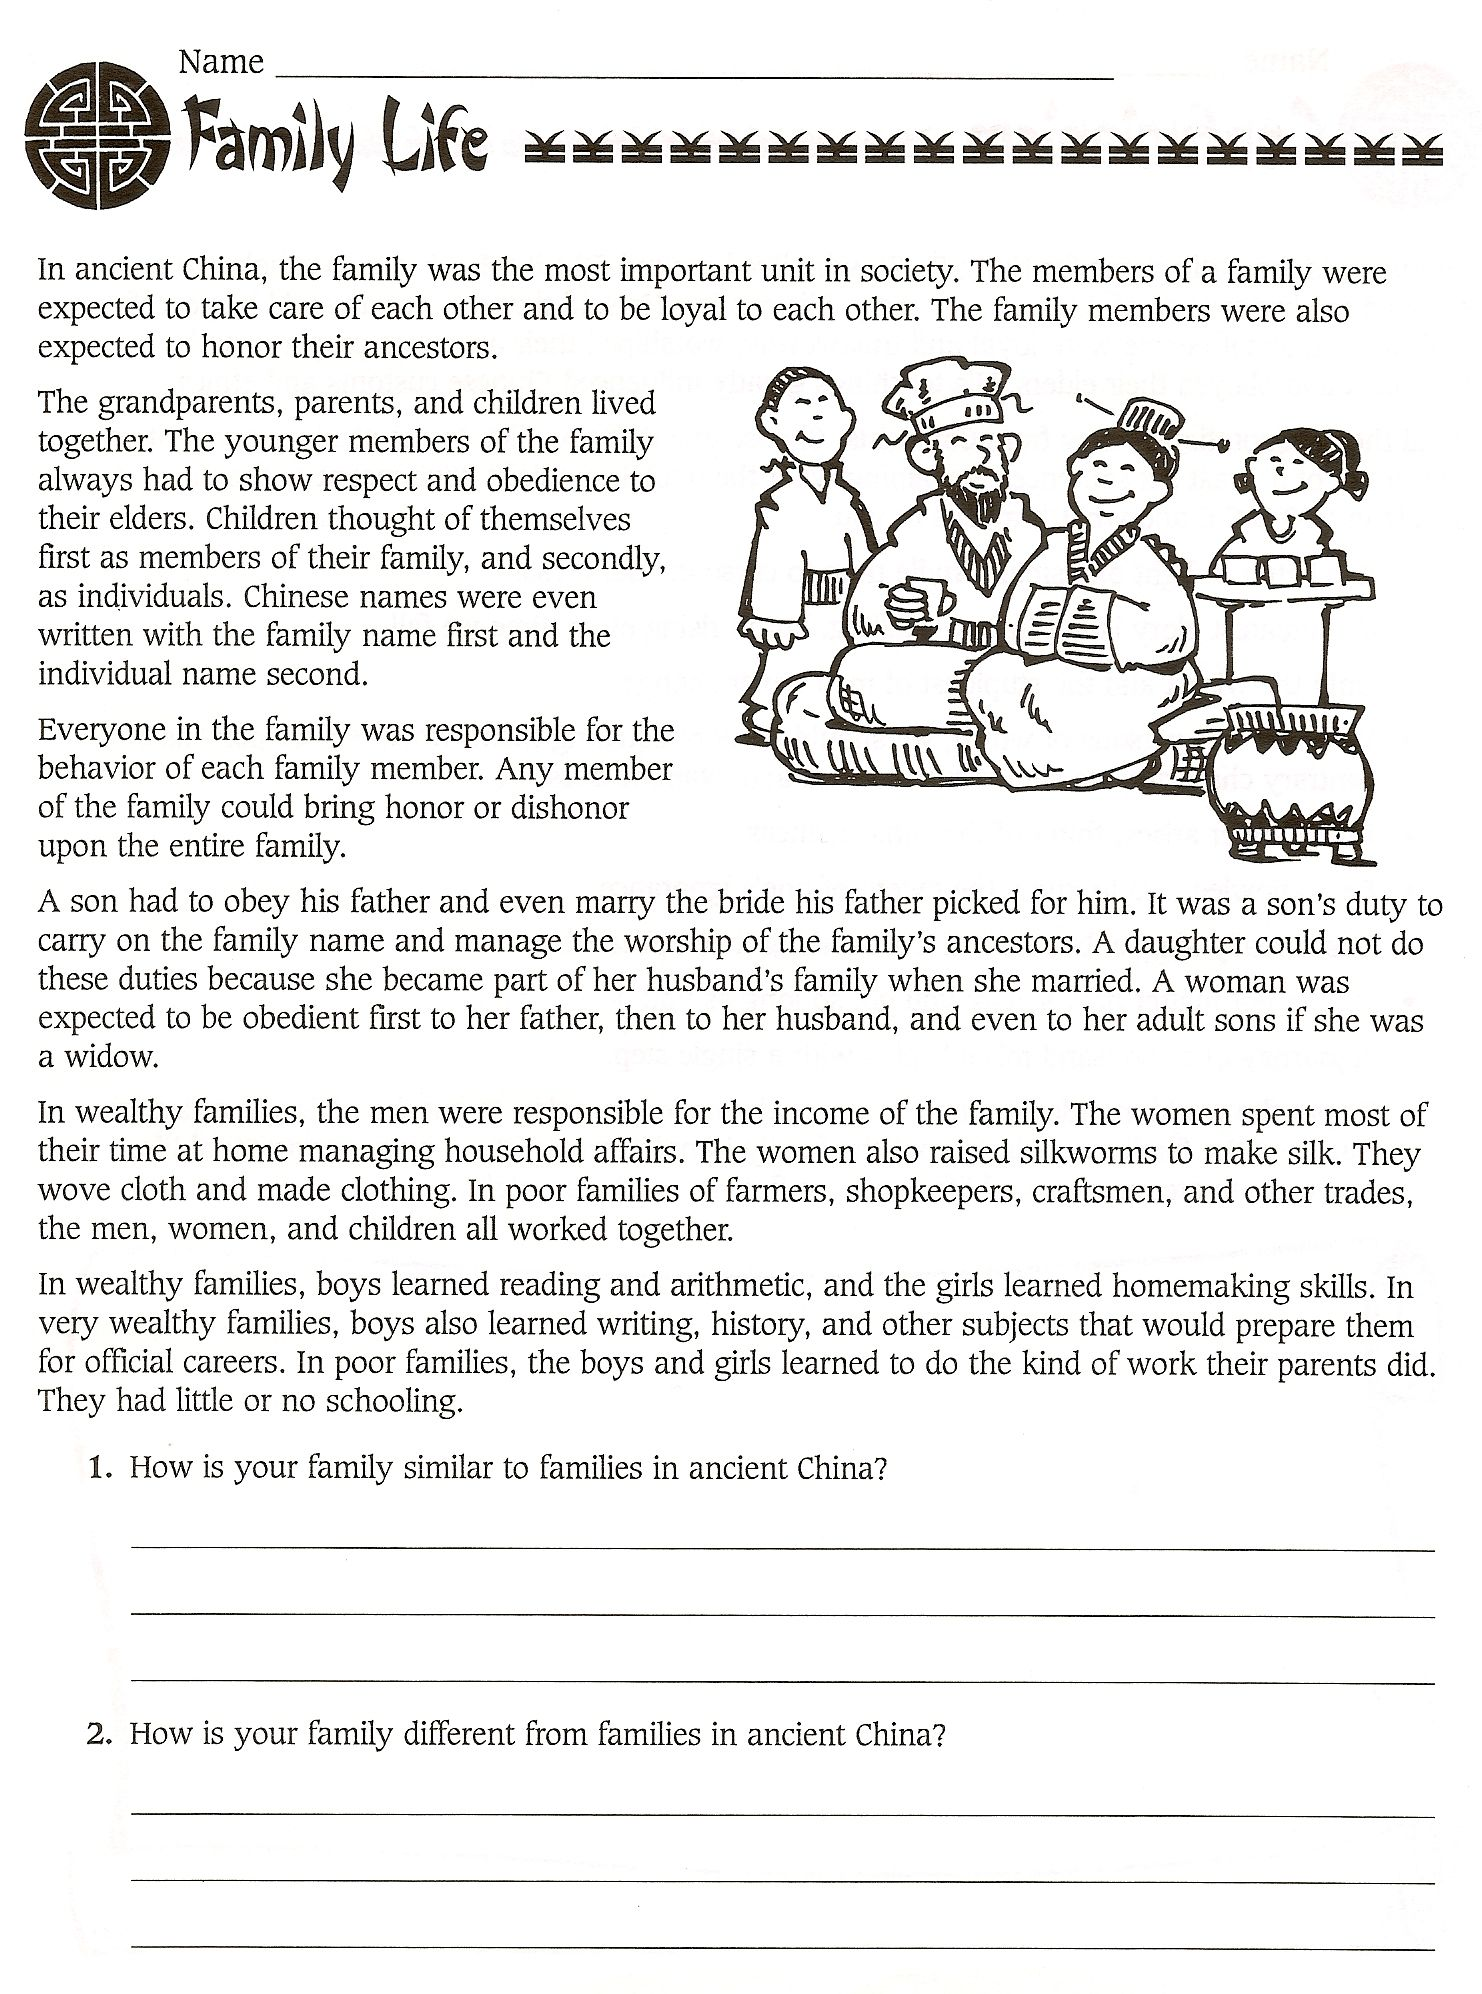 Worksheets Second Grade Social Studies Worksheets 6th grade social studies ancient china worksheets free free